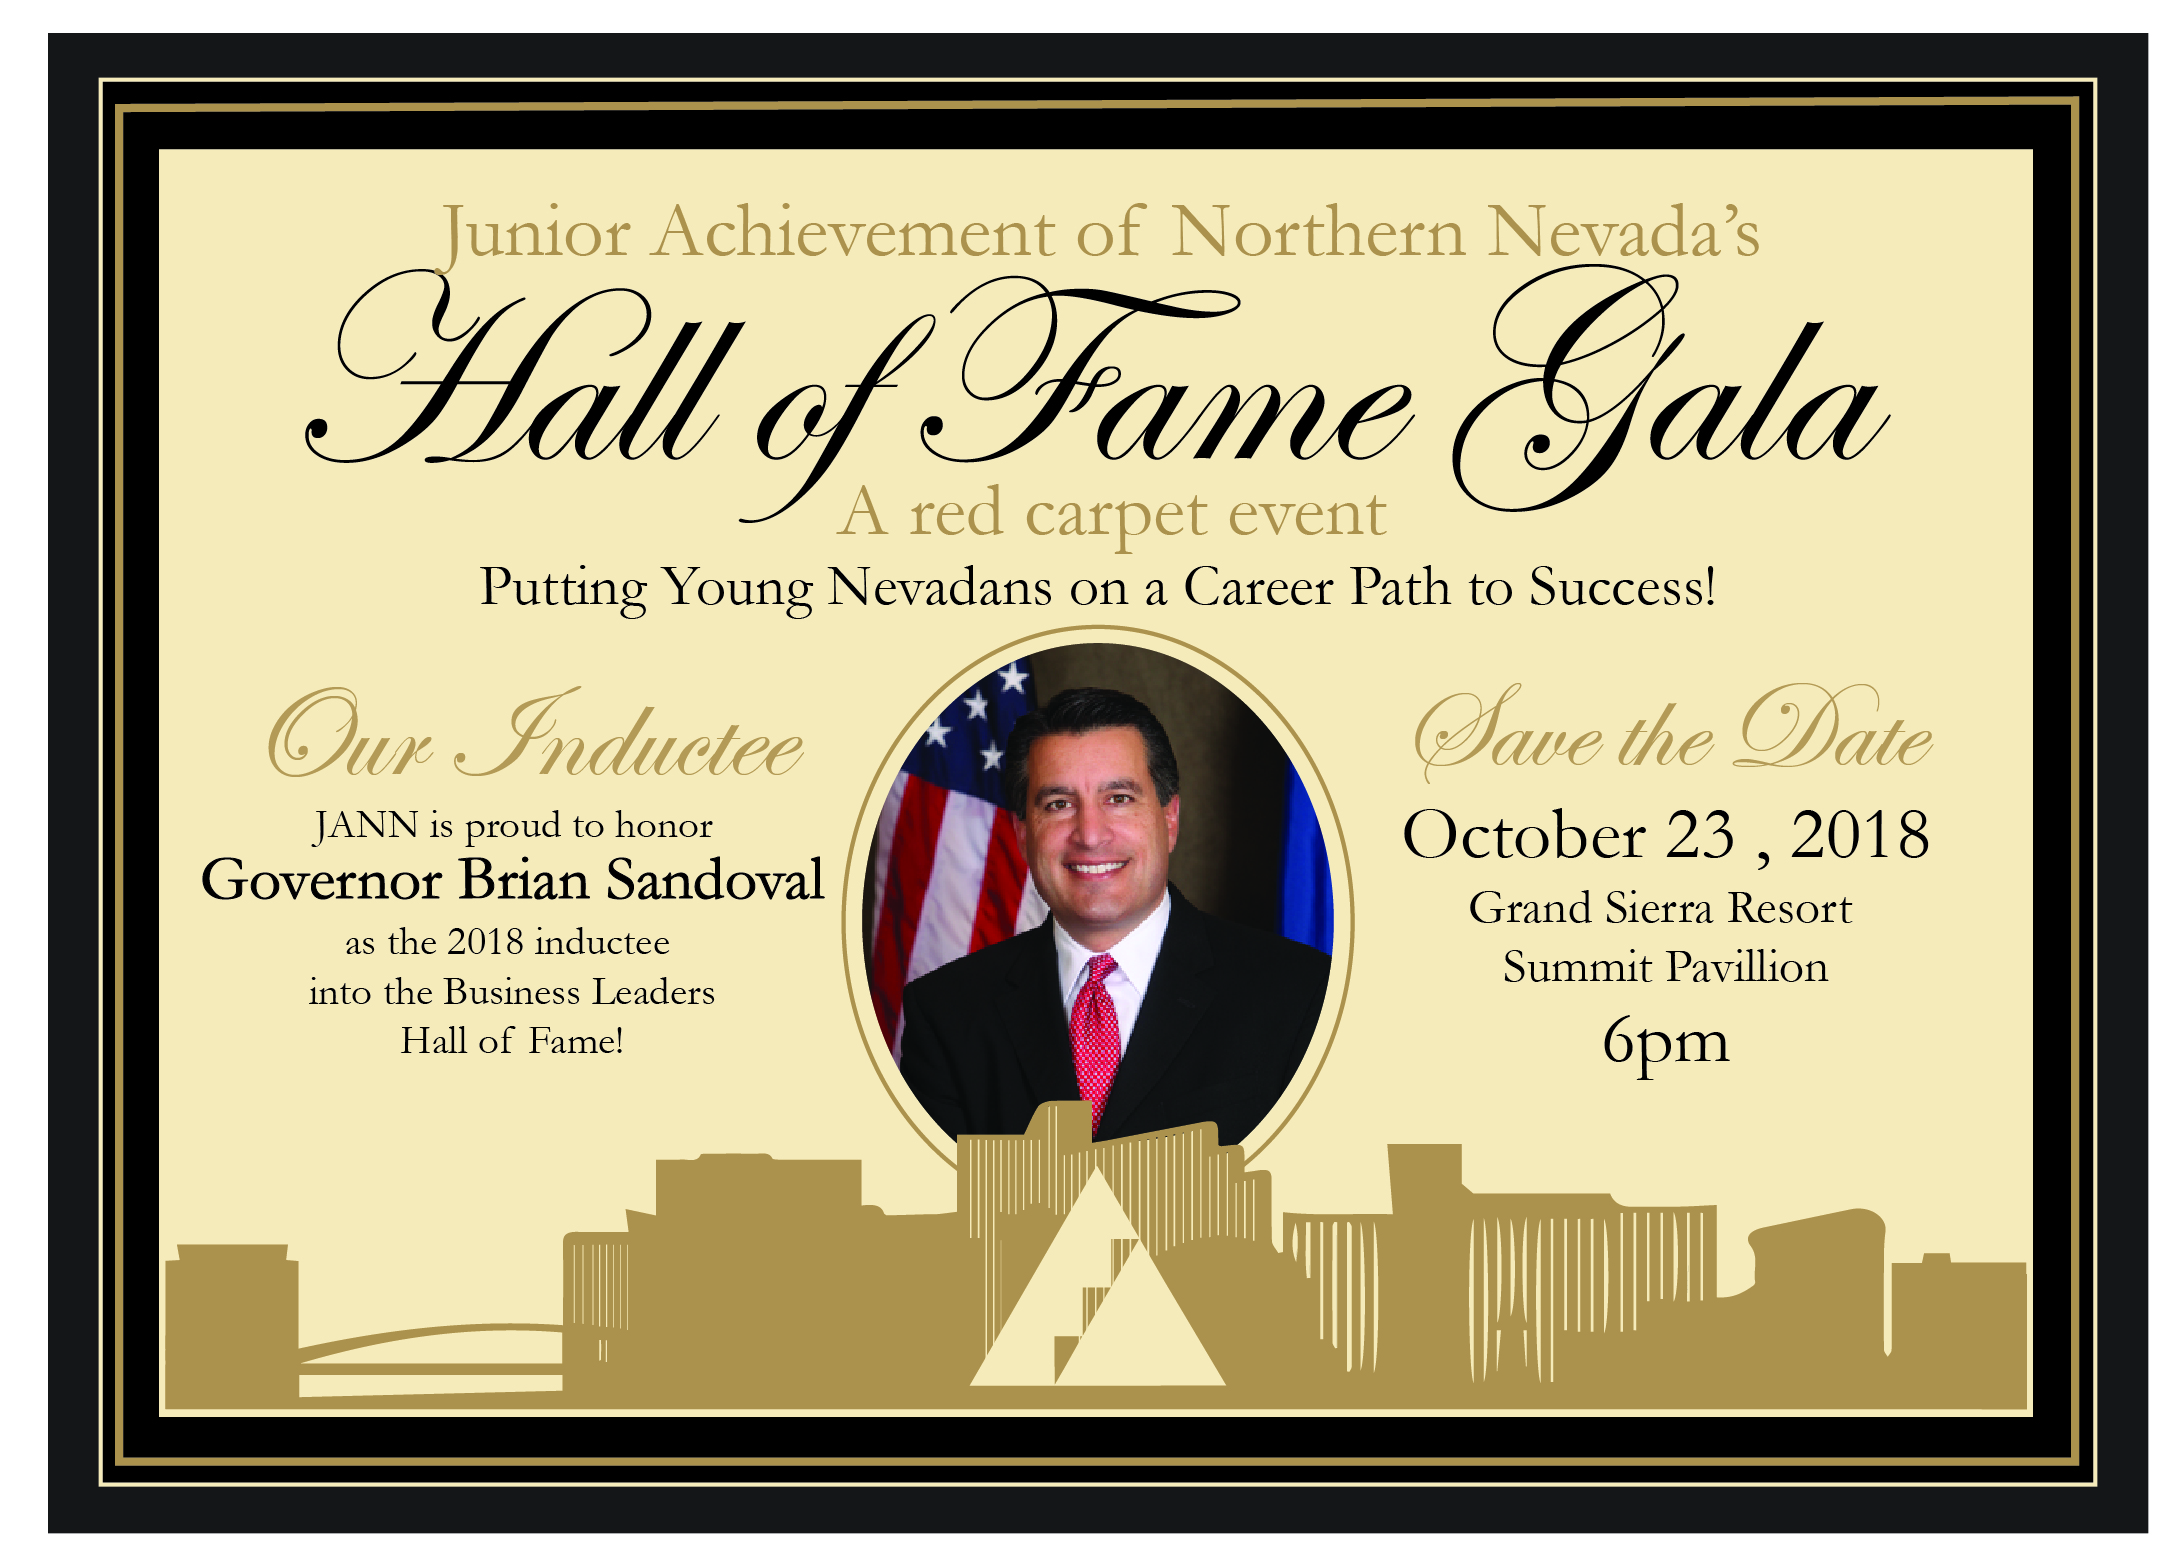 33rd Annual Hall of Fame Gala